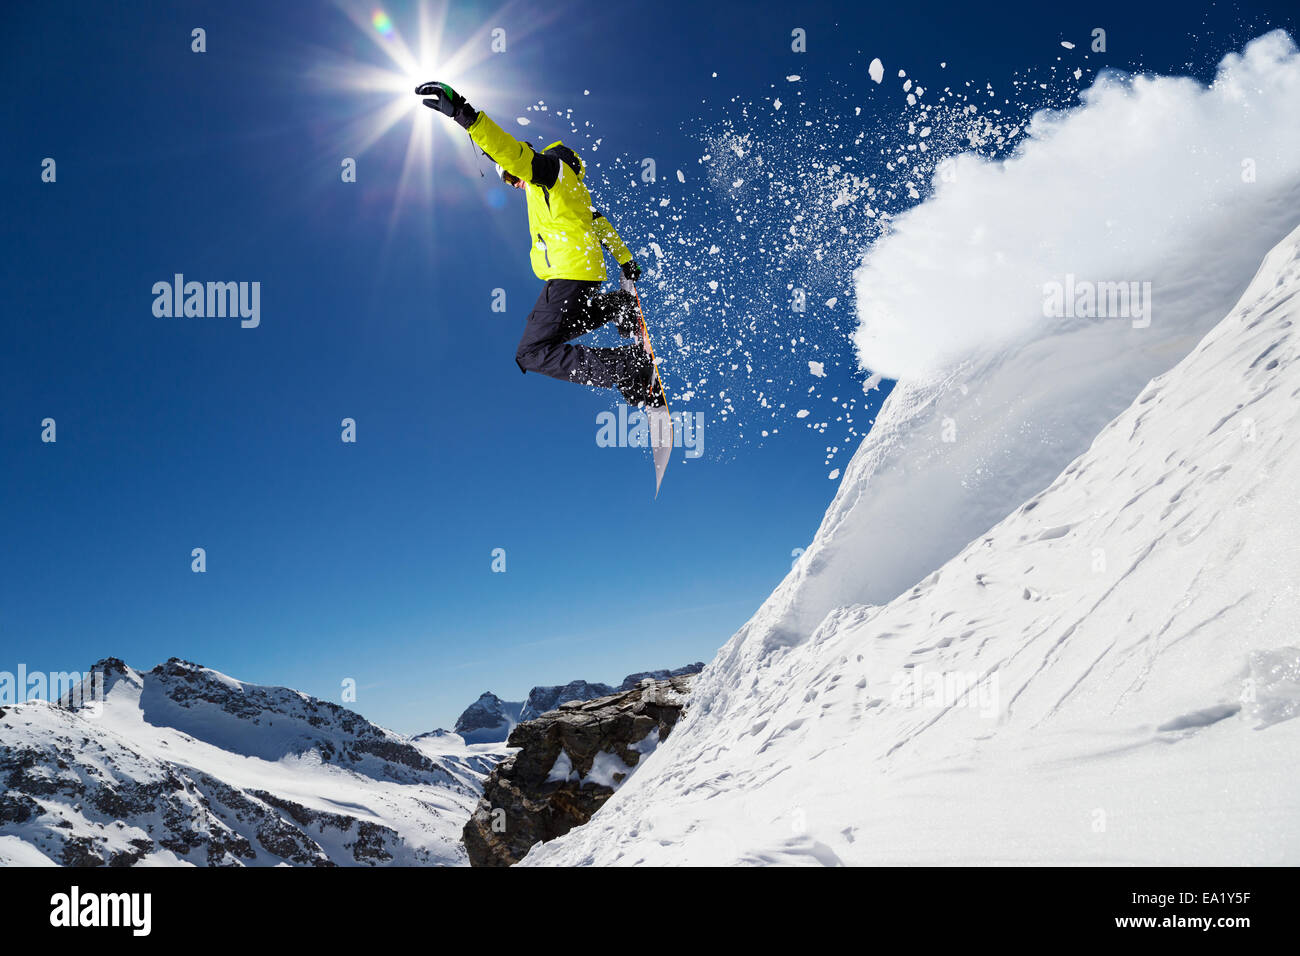 Alpine skier skiing downhill, blue sky on background - Stock Image